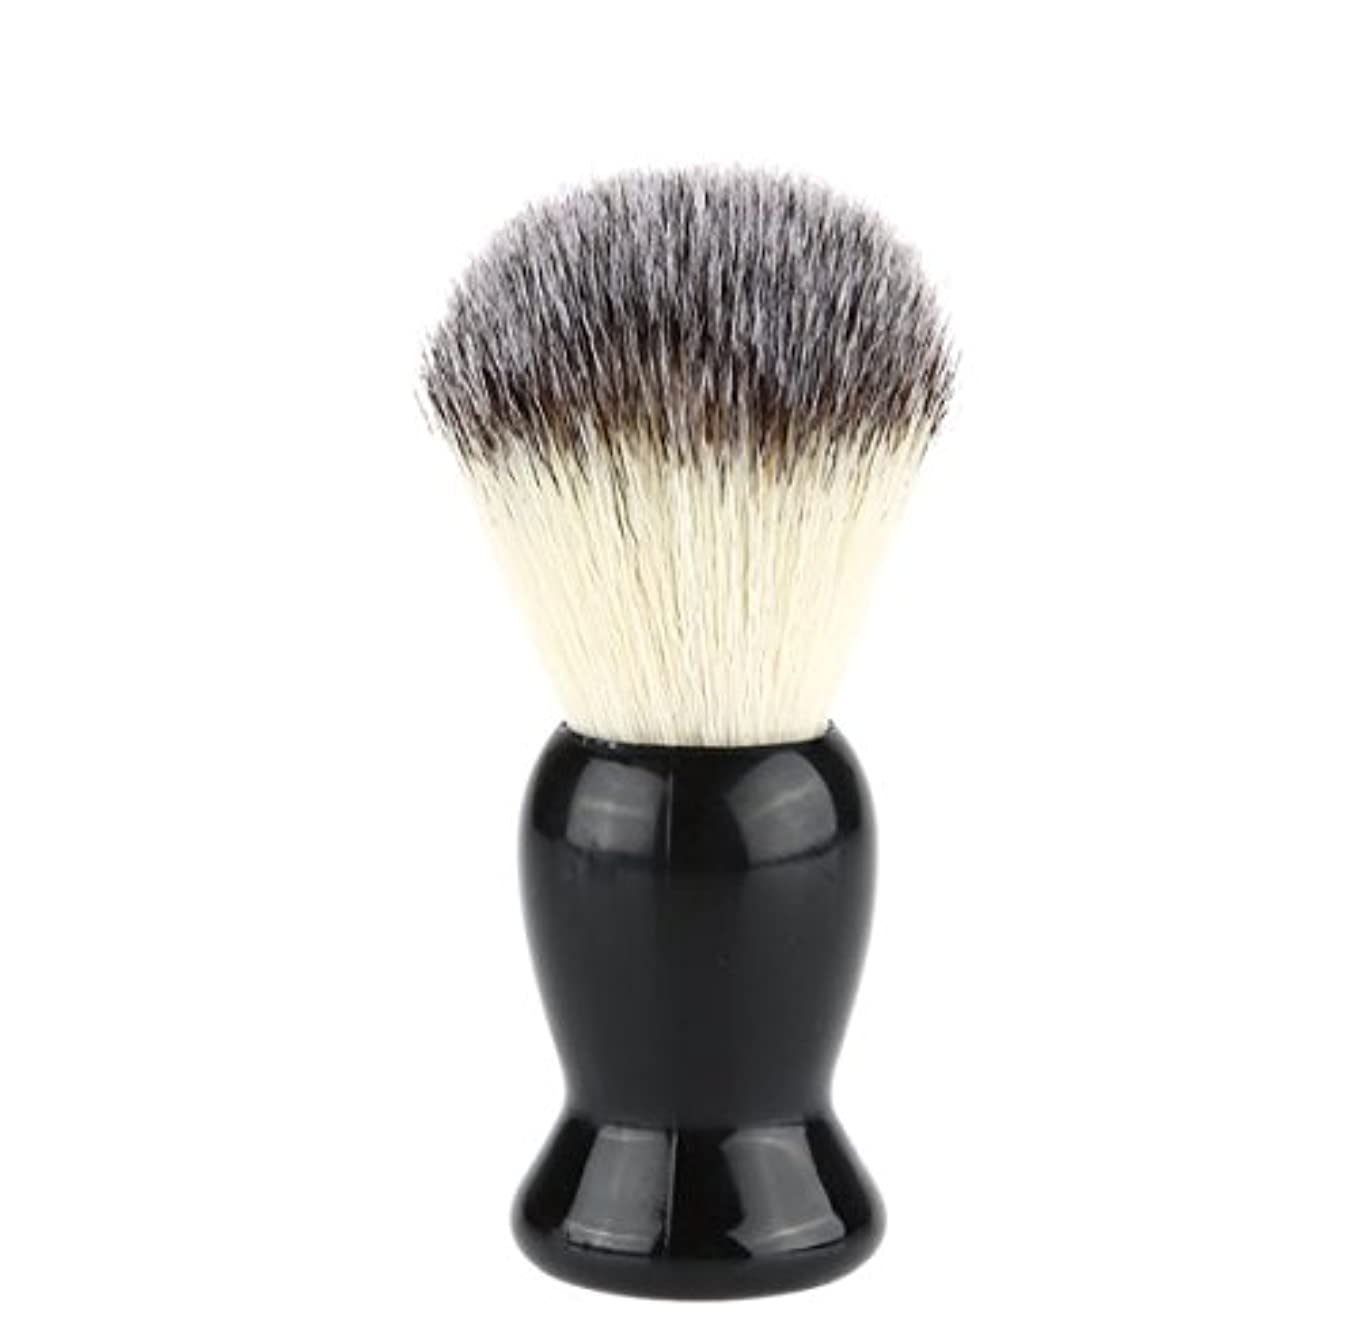 みがきますこれら幹Superb Barber Salon Shaving Brush Black Handle Face Beard Cleaning Men Shaving Razor Brush Cleaning Appliance...